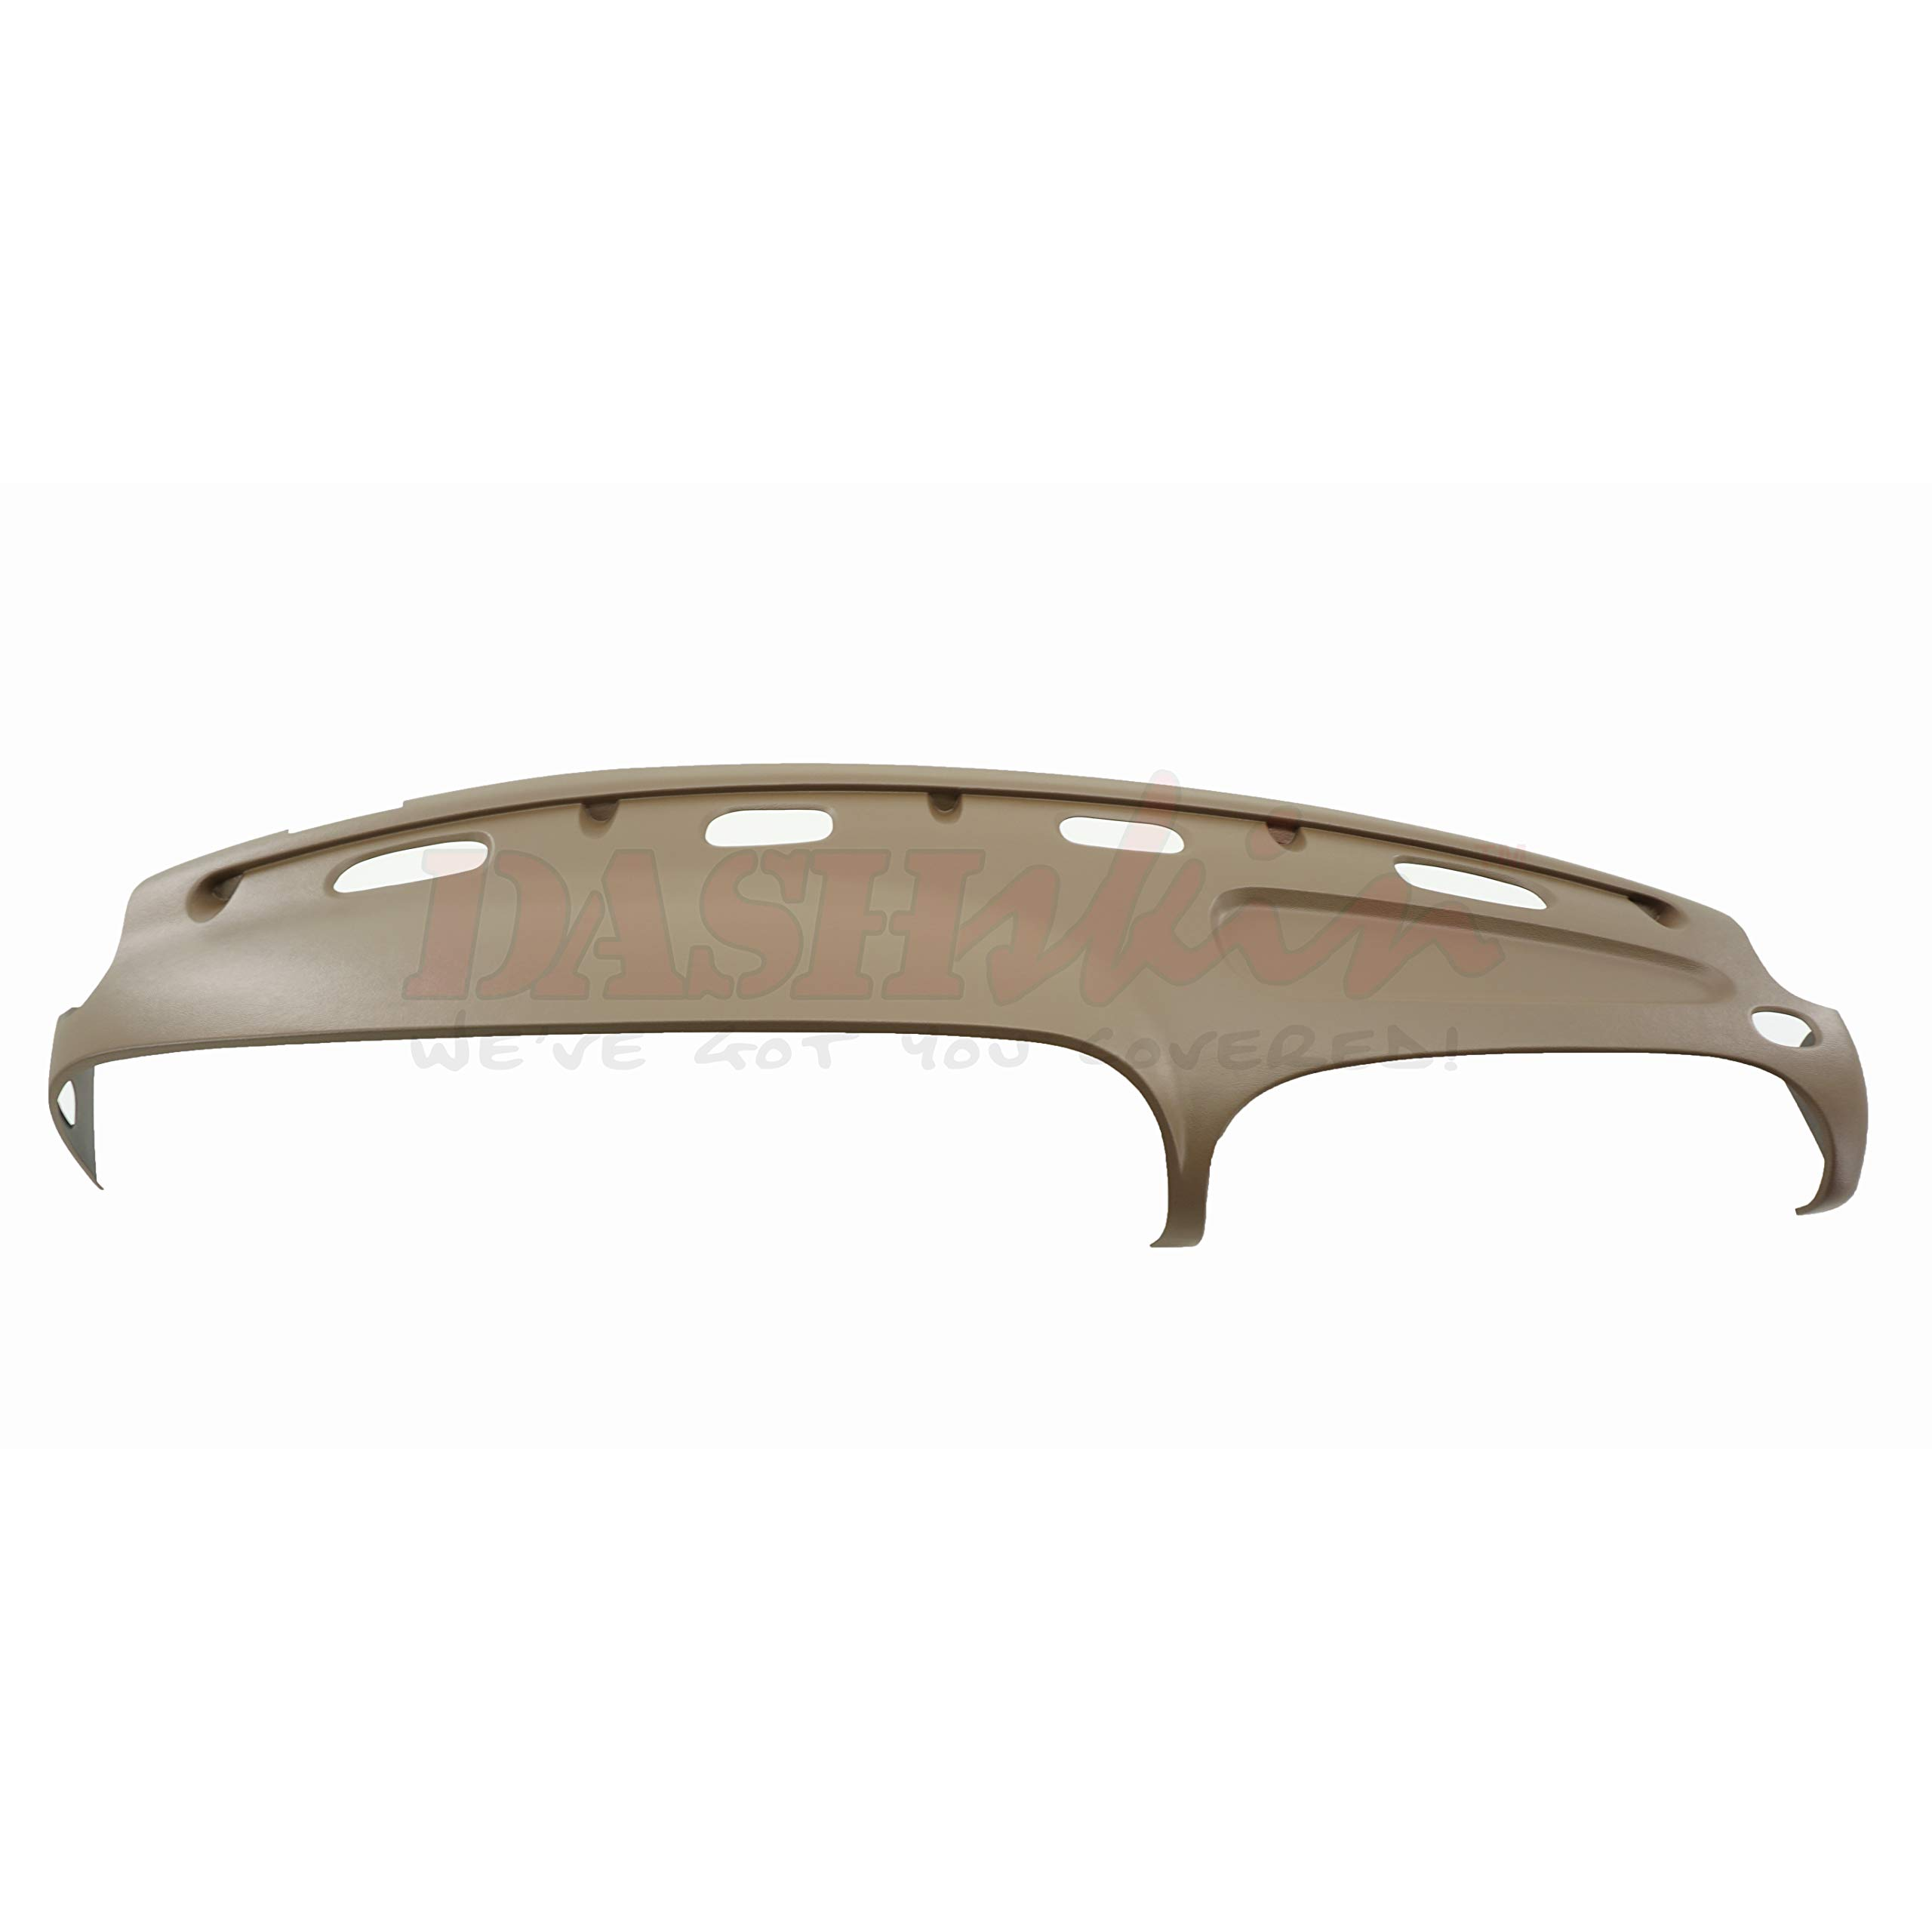 DashSkin Molded Dash Cover Compatible with 98-01 Dodge Ram in Camel by DashSkin (Image #1)